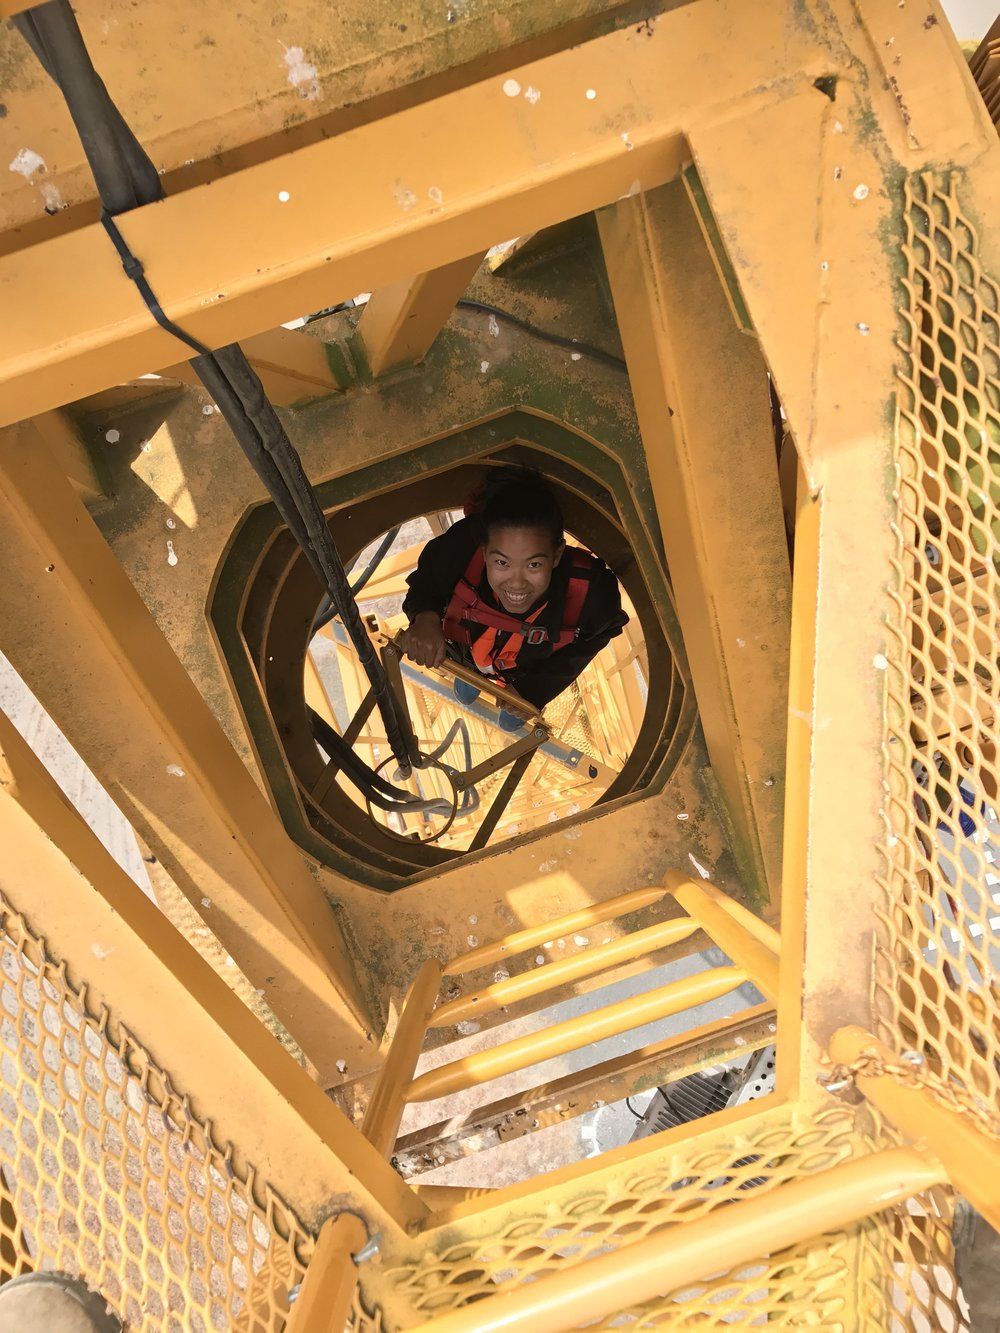 That's me climbing the 100-foot crane.